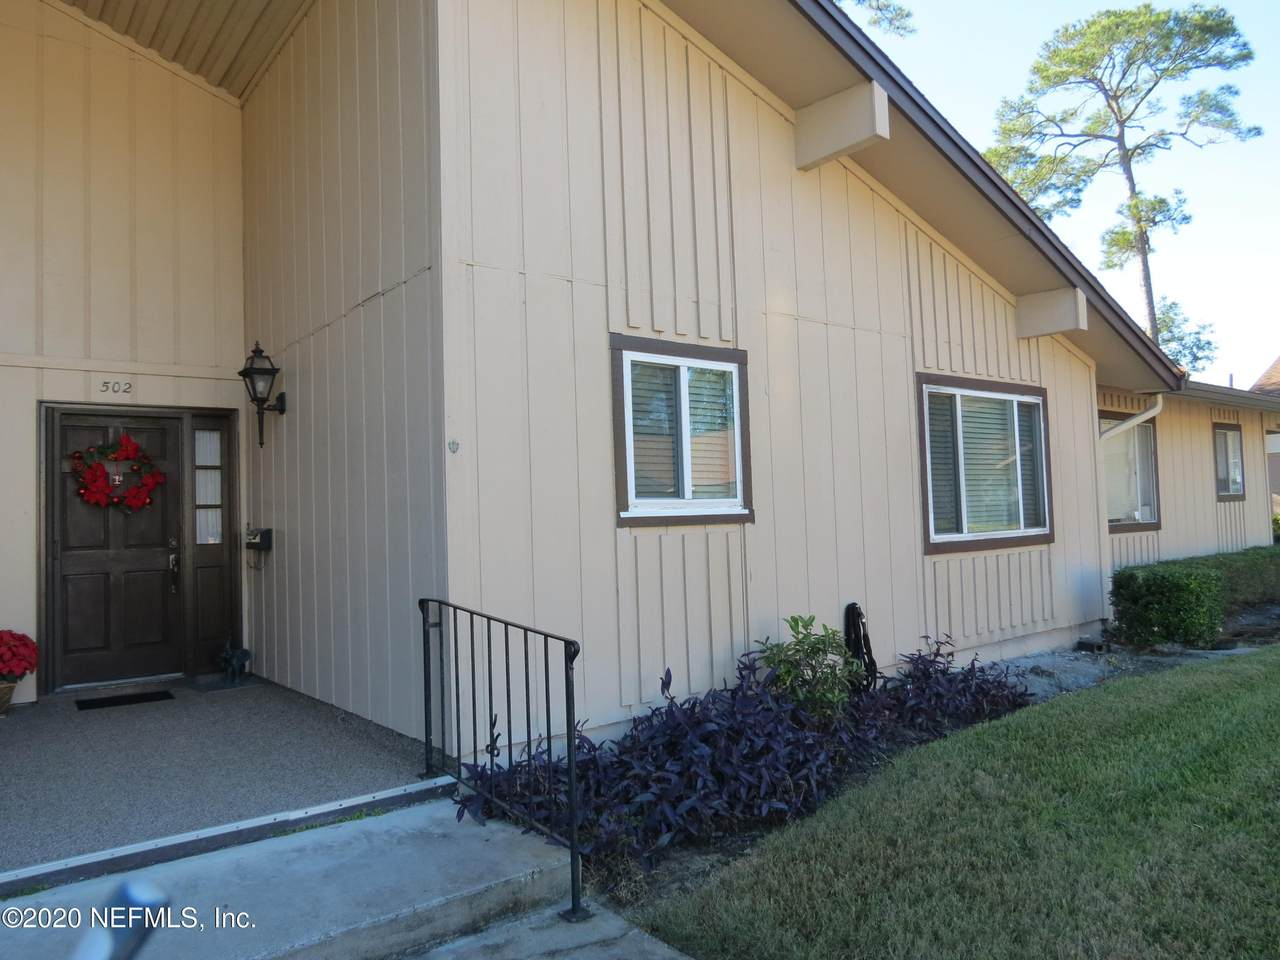 9252 San Jose Blvd - Photo 1